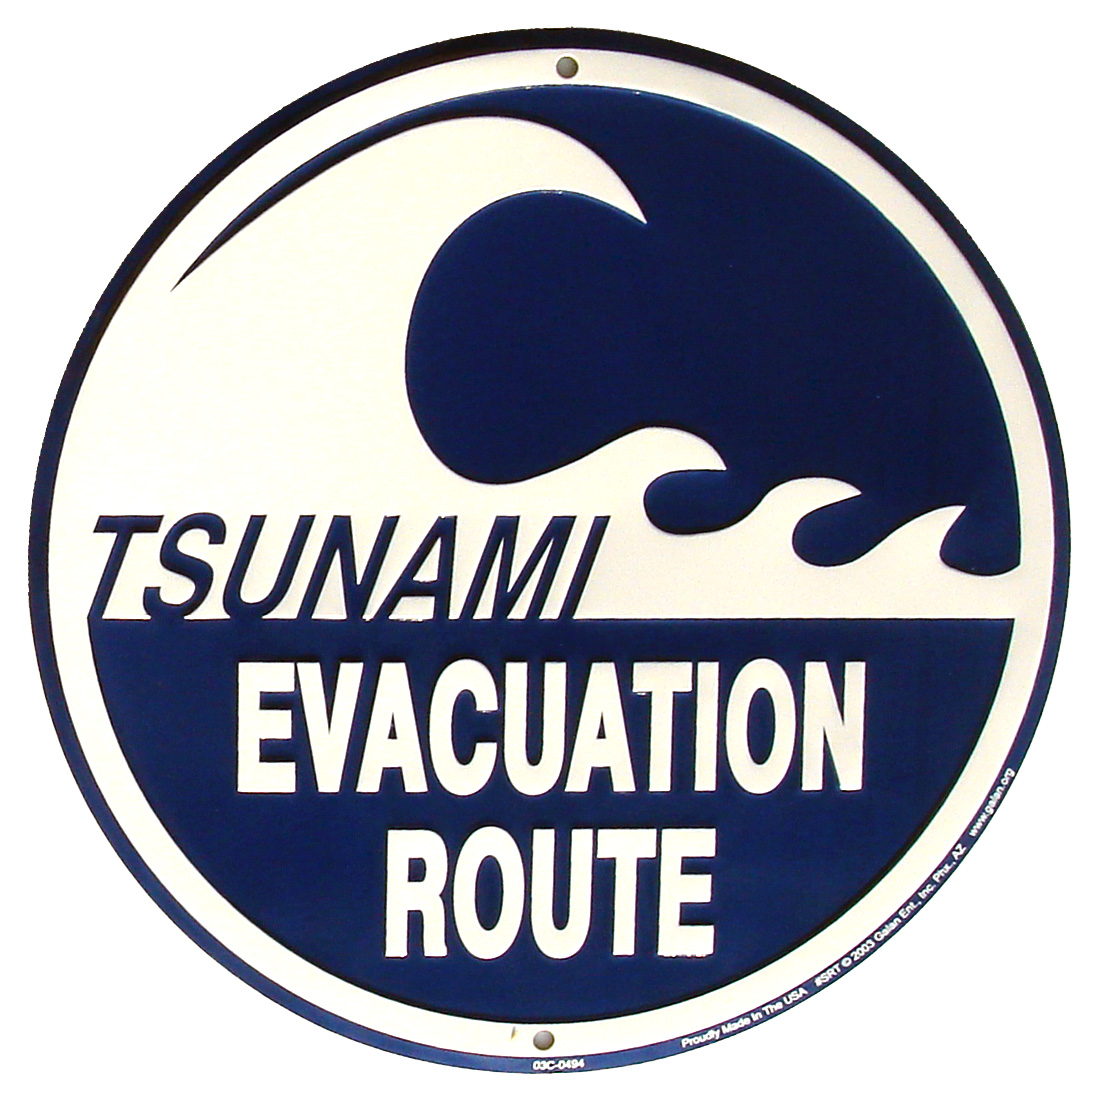 TSUNAMI EVACUATION ROUTE Metal Road Sign Nautical Tiki Bar Pub Wall Beach Decor